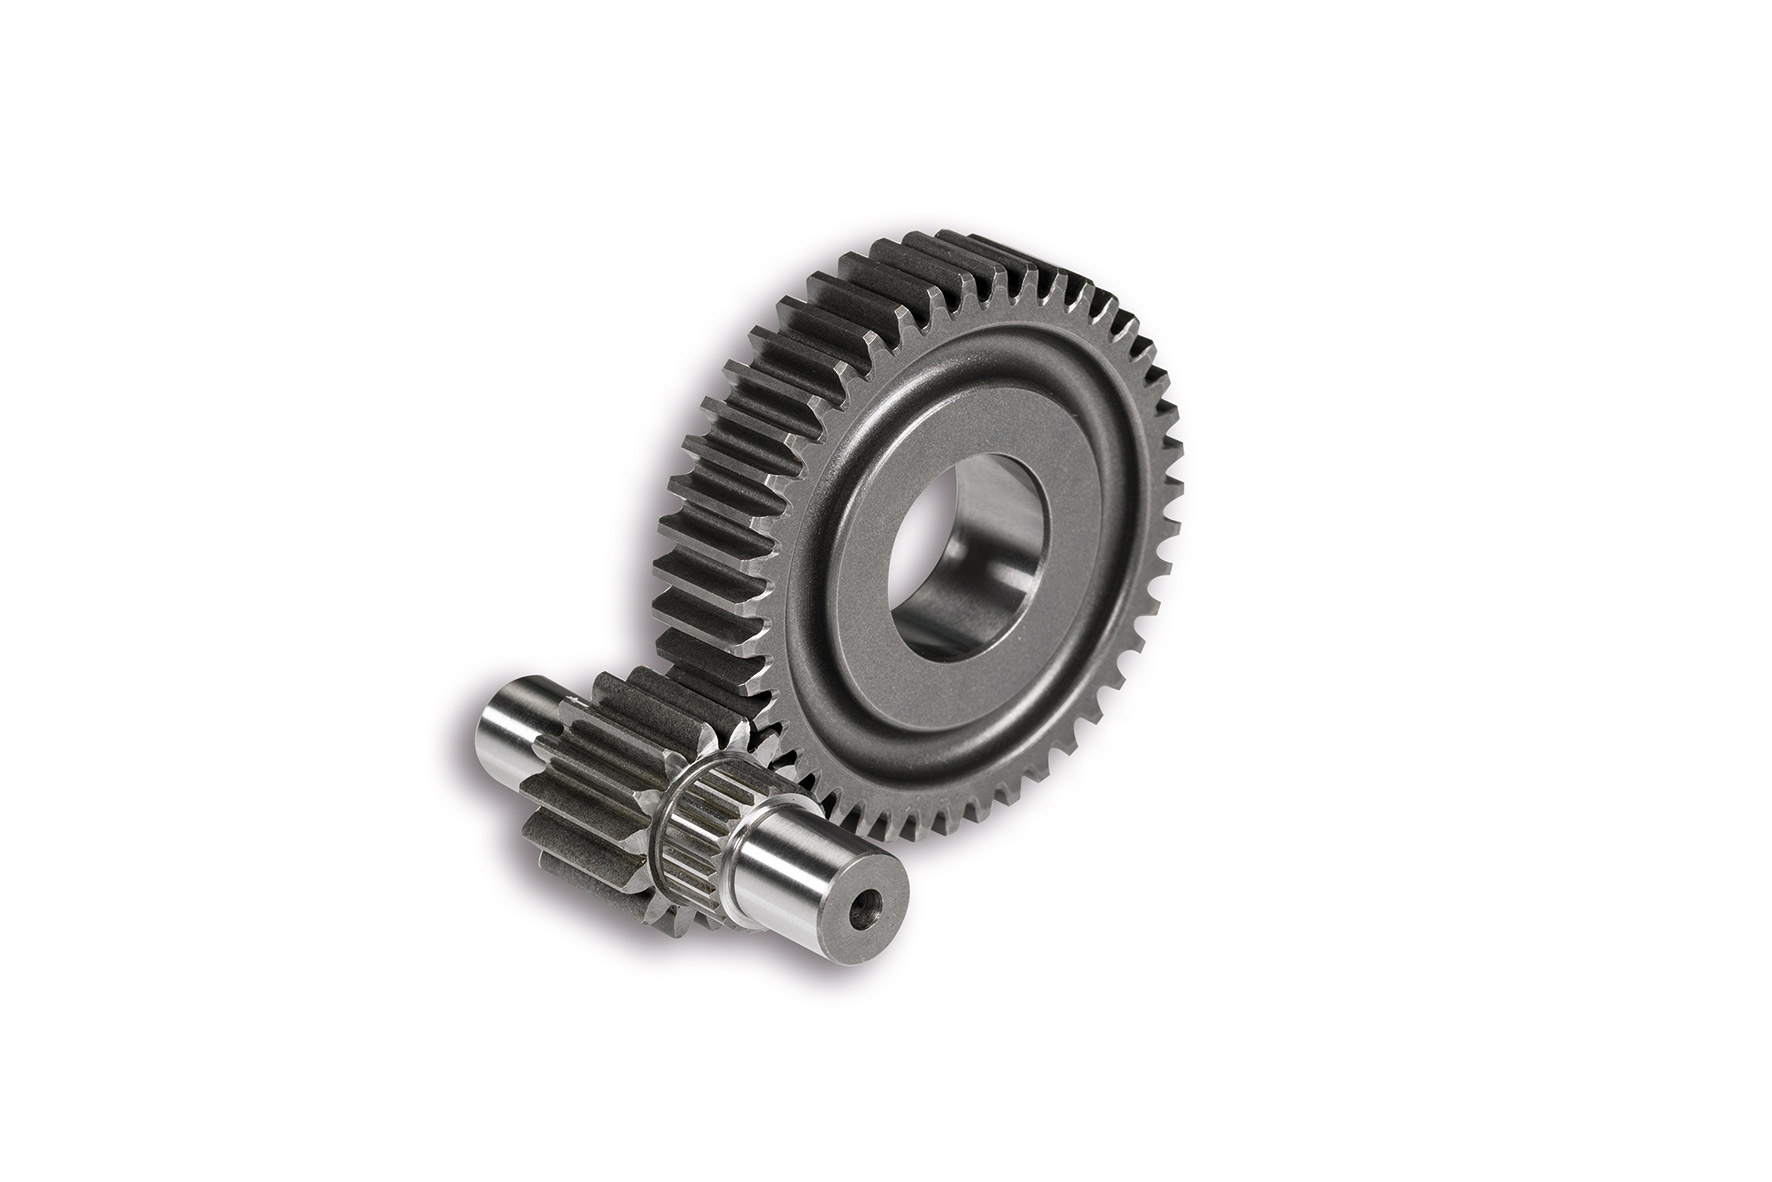 SECONDARY GEARS HTQ z 15/41 WITH GEARED COUPLING